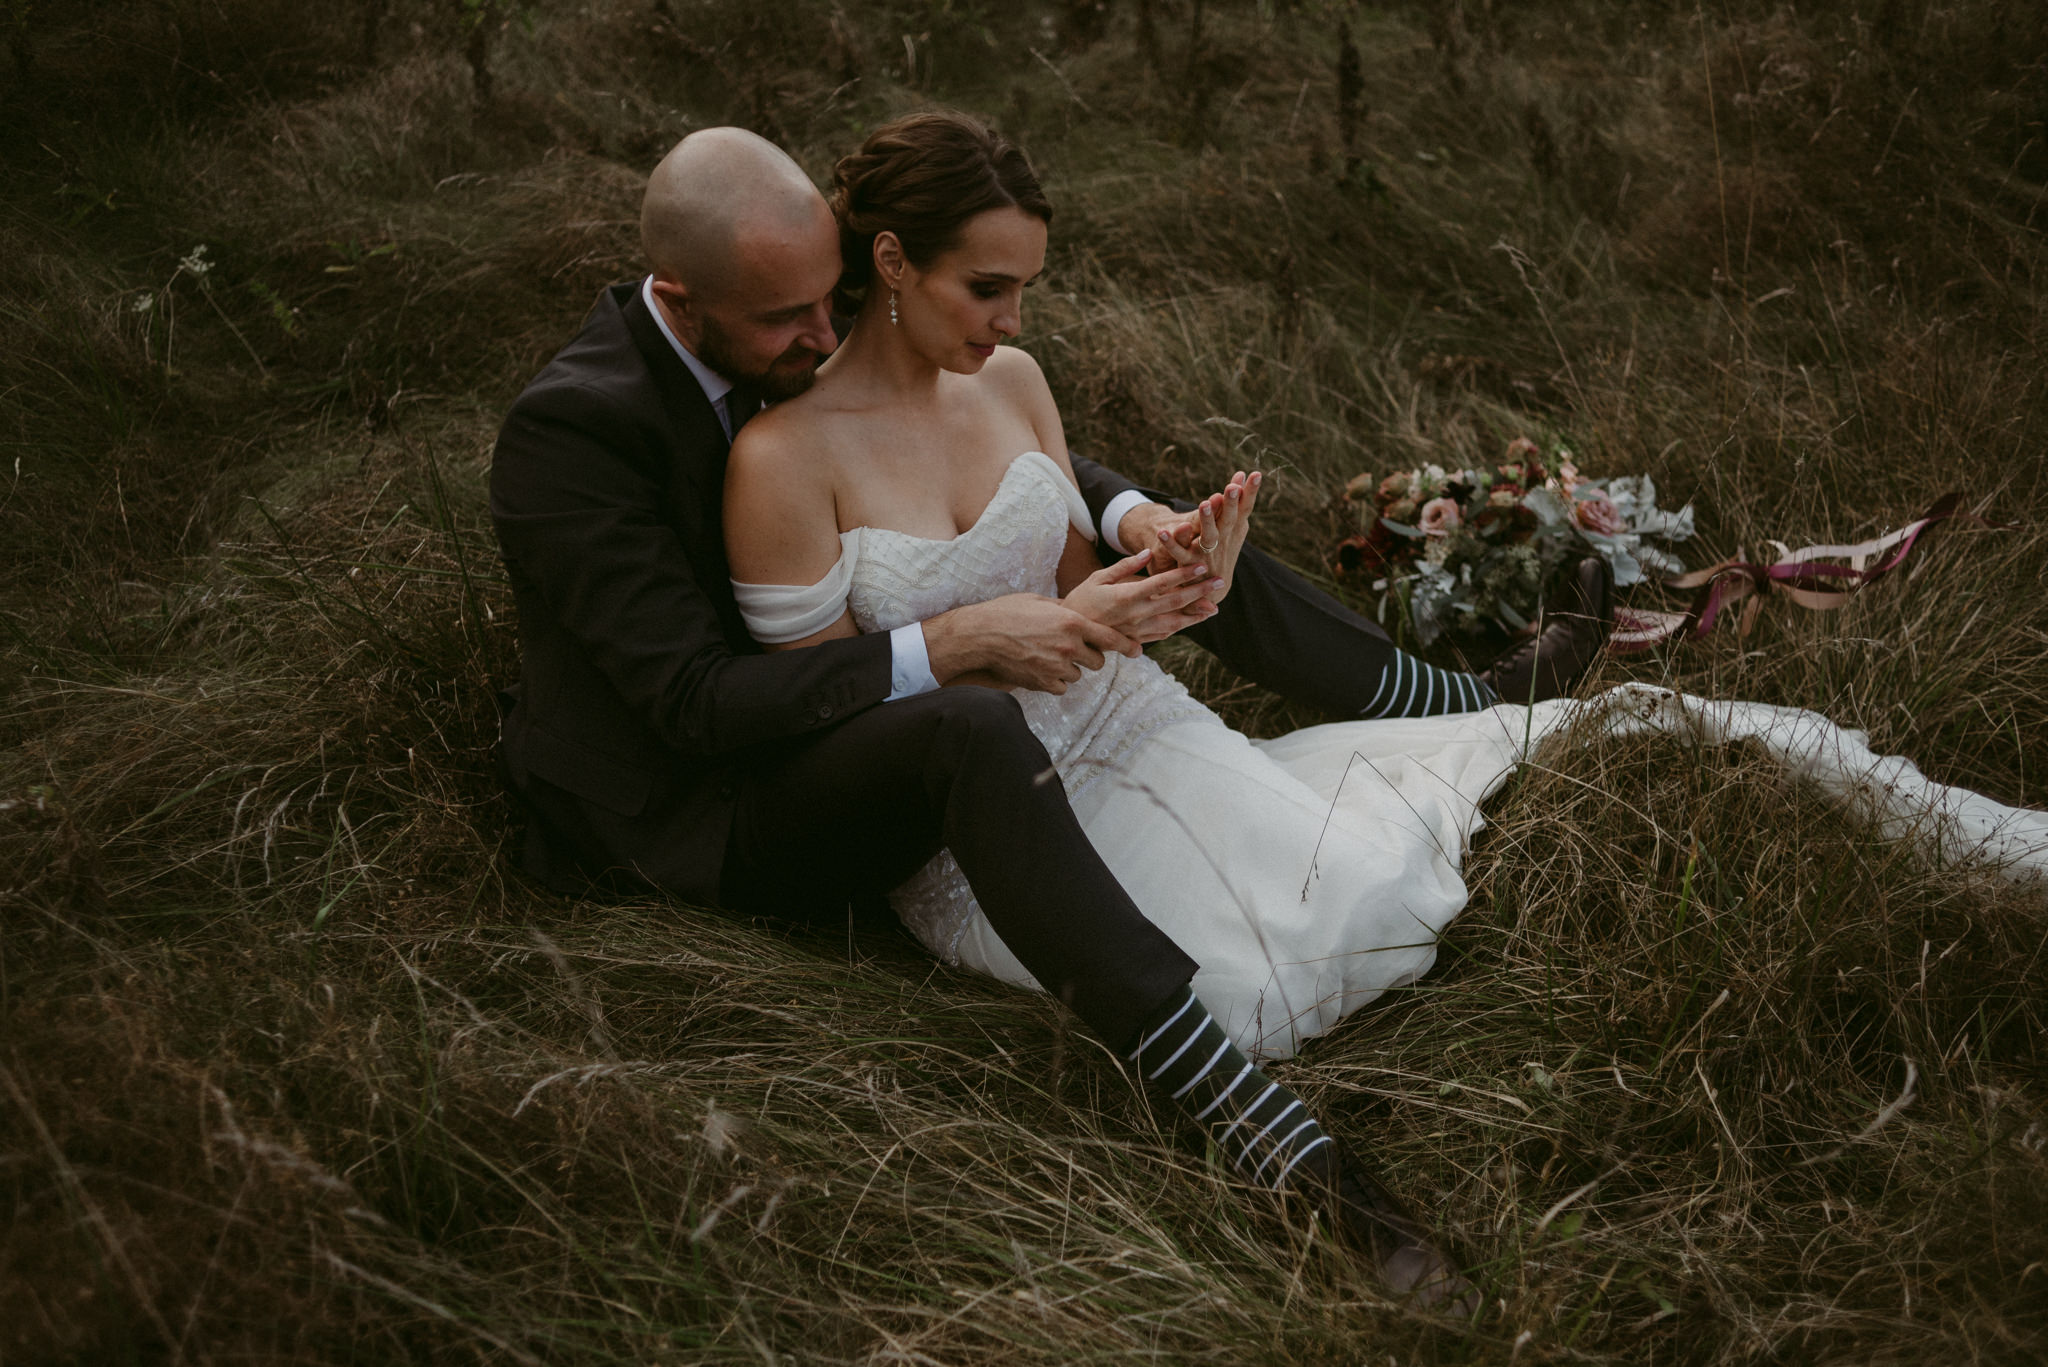 Bride sitting between groom's legs in field playing with each other's hands